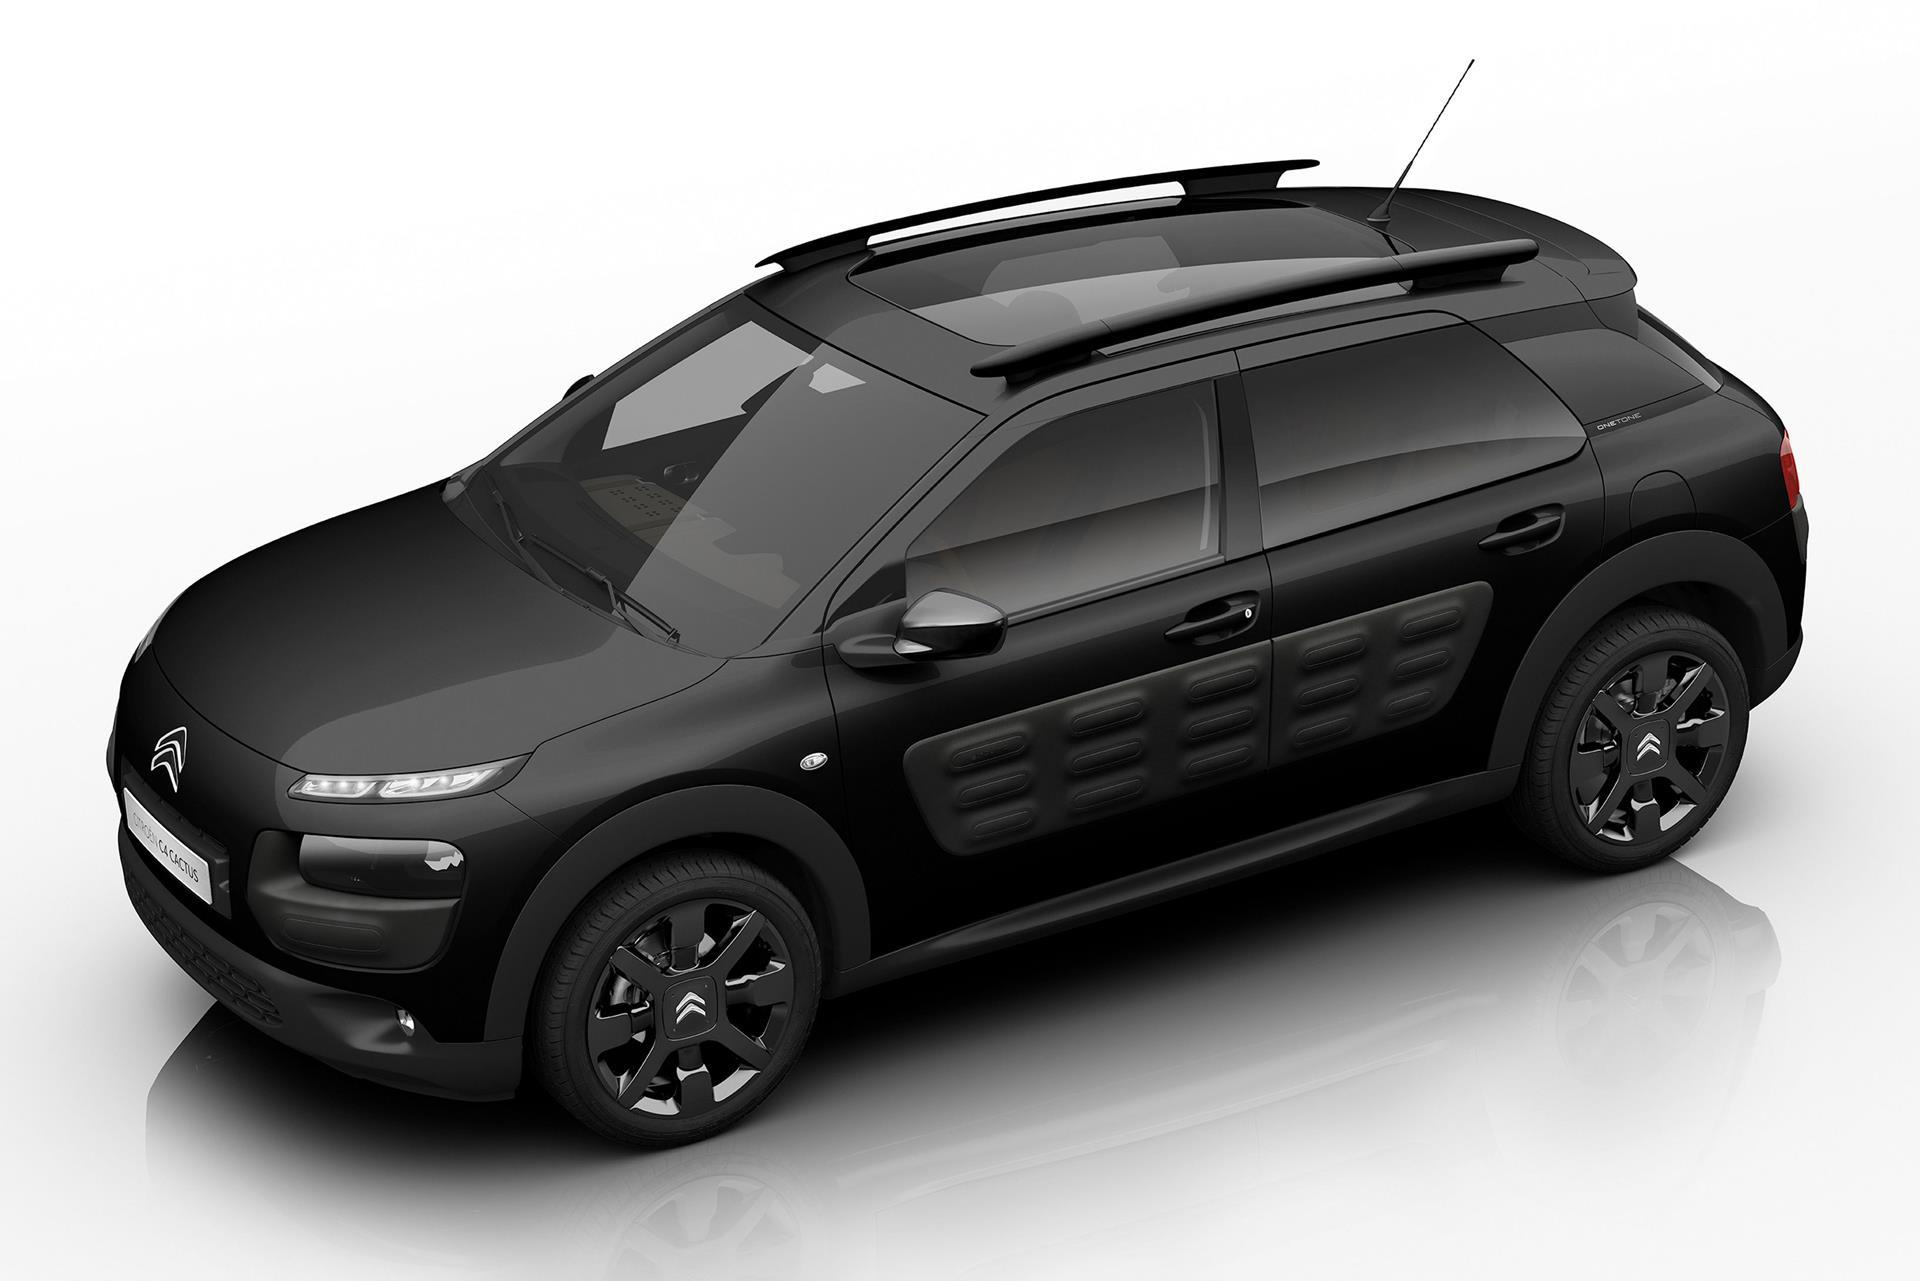 2017 citroen c4 cactus onetone news and information. Black Bedroom Furniture Sets. Home Design Ideas